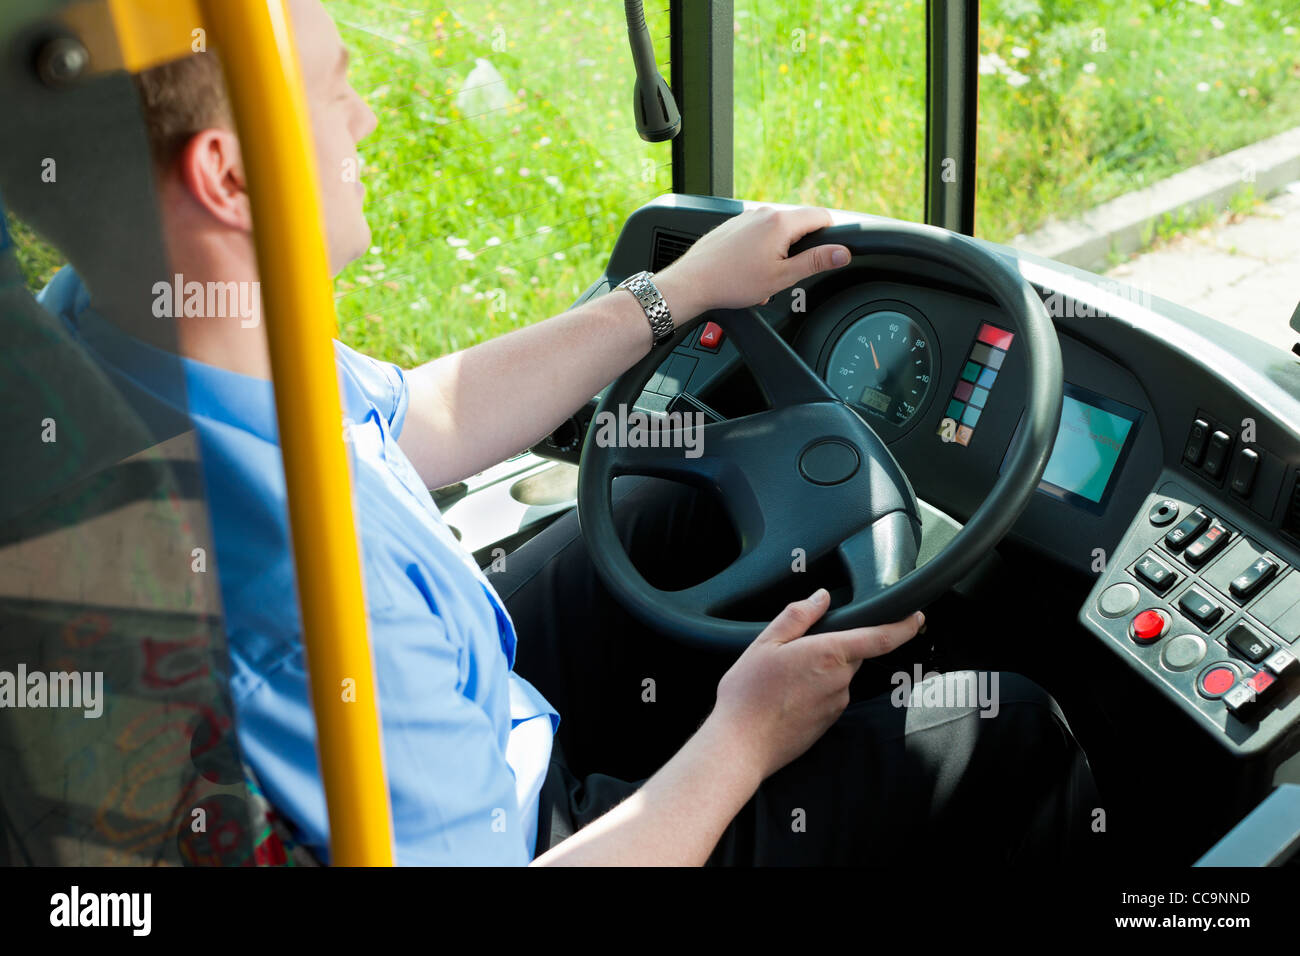 Bus driver sitting in his bus on tour - Stock Image